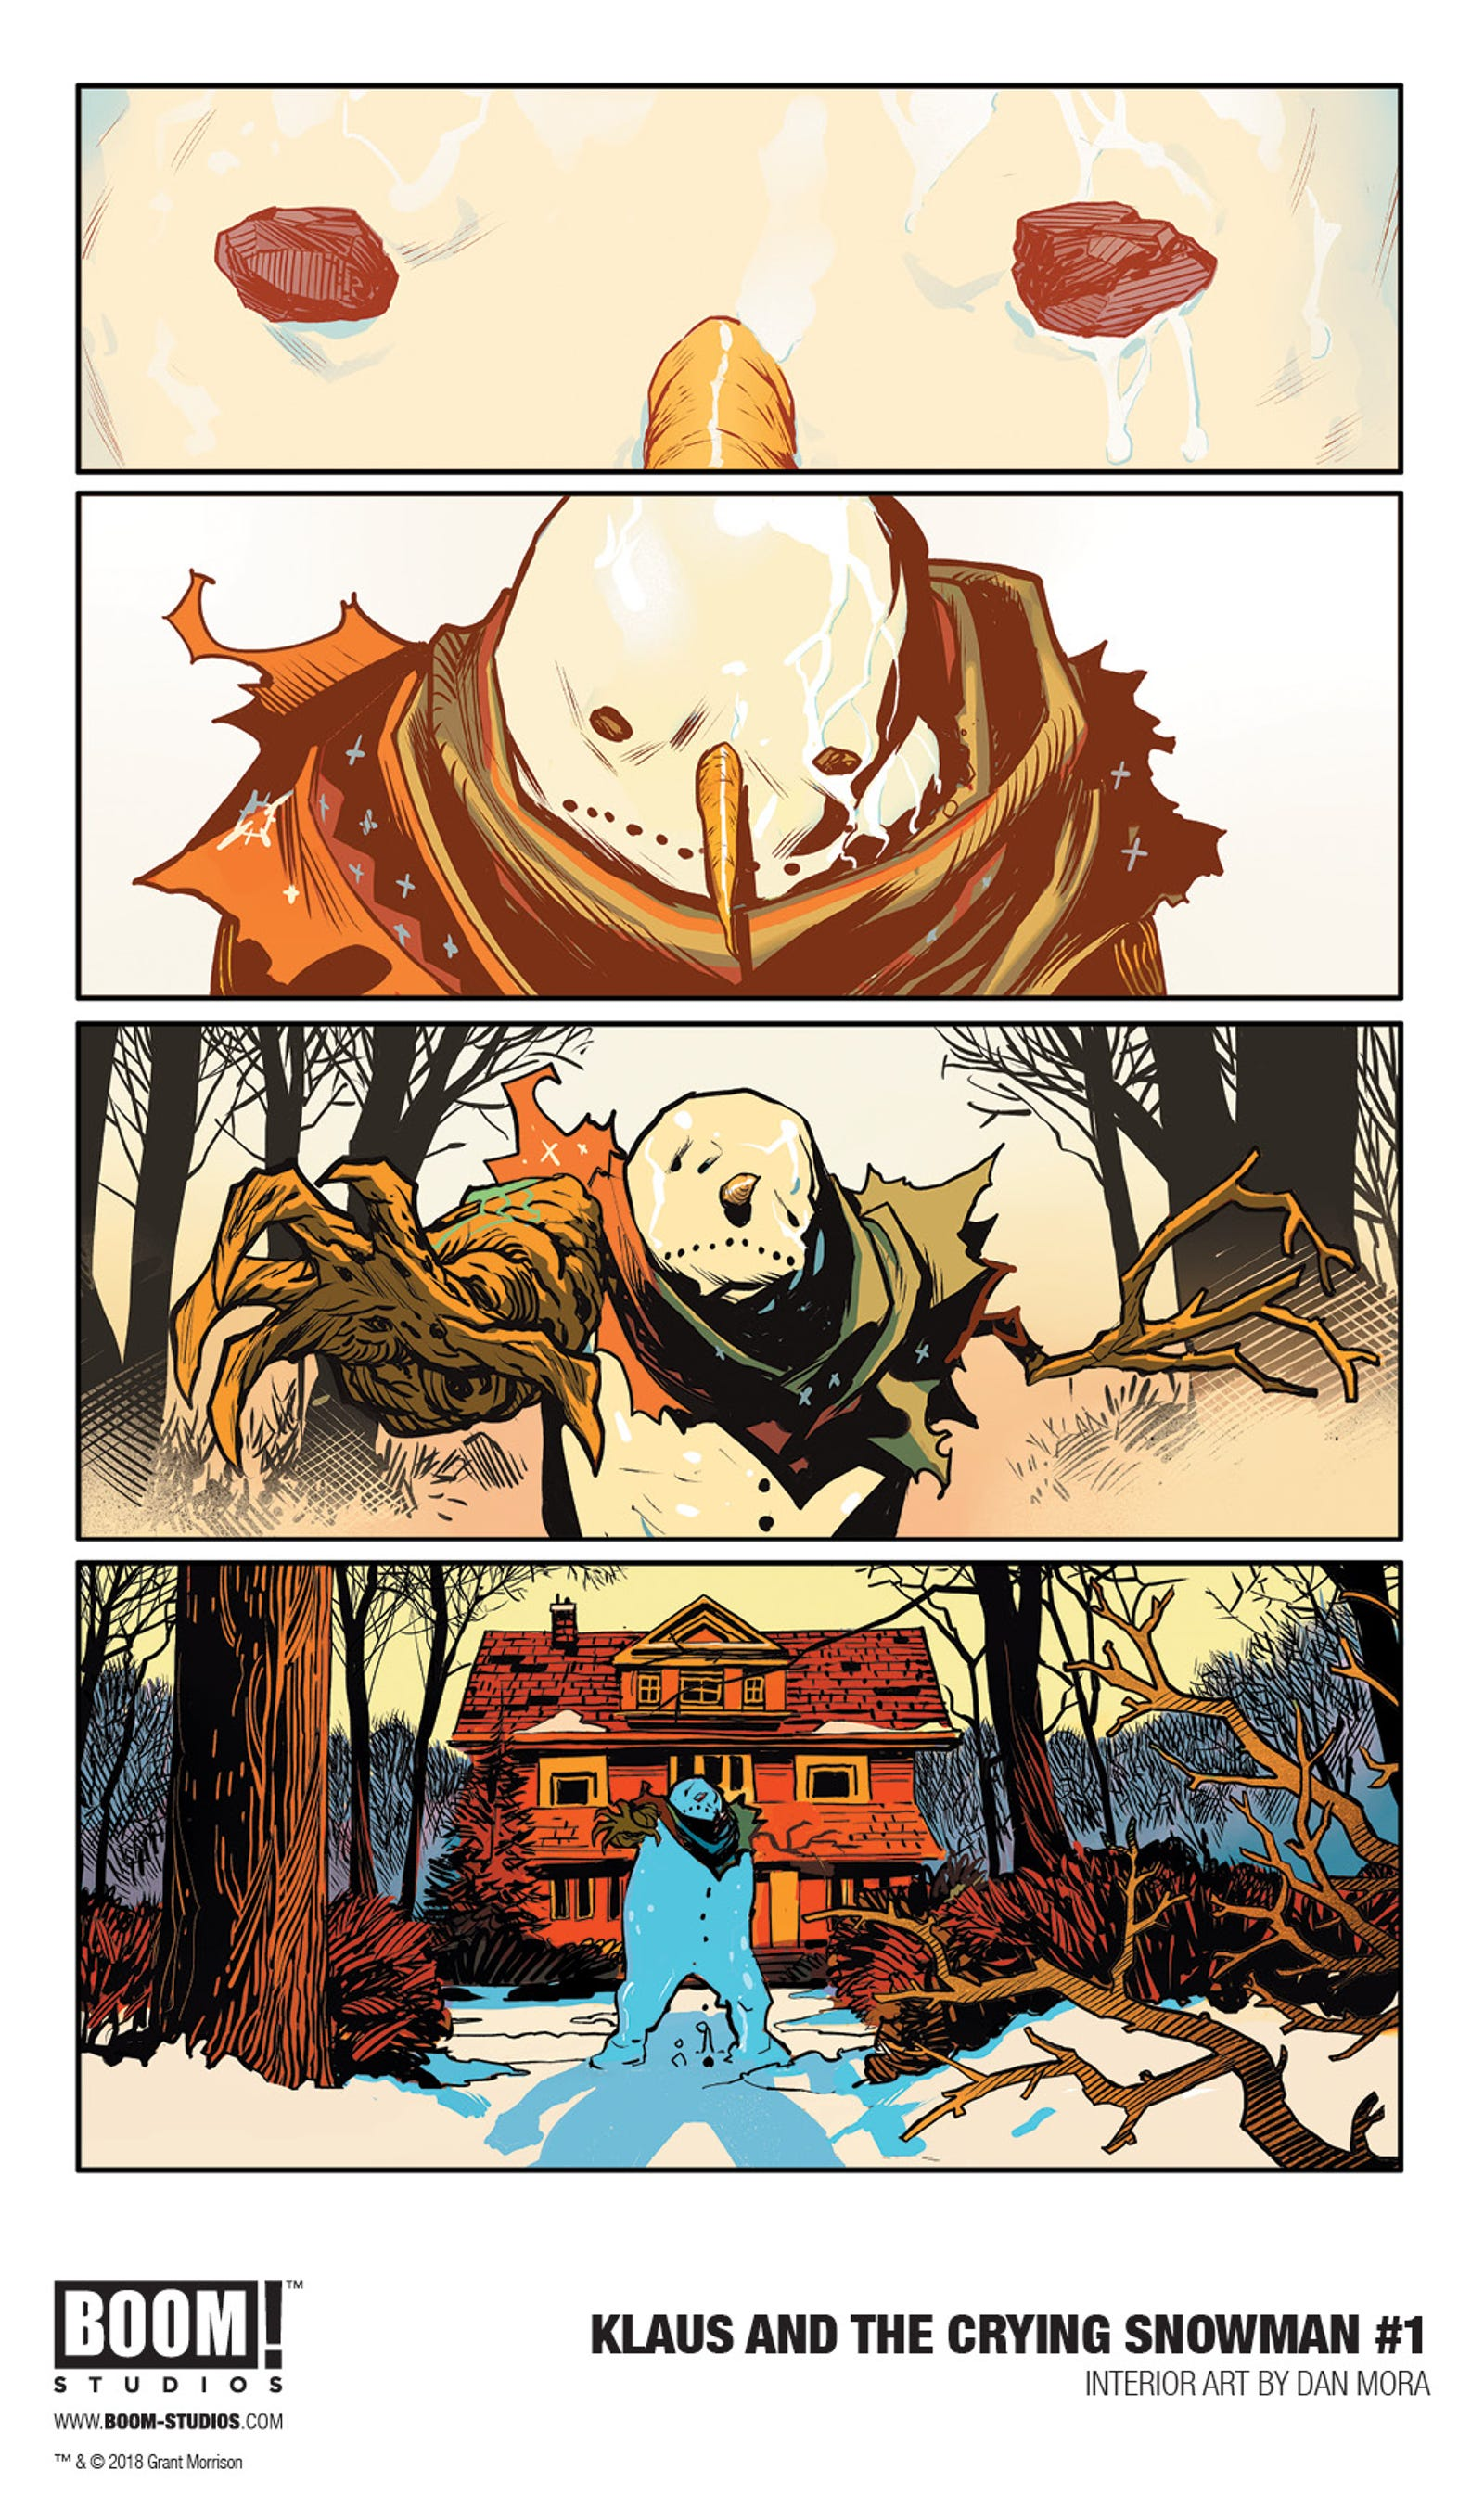 Klaus and the Crying Snowman interior art by Dan Mora.